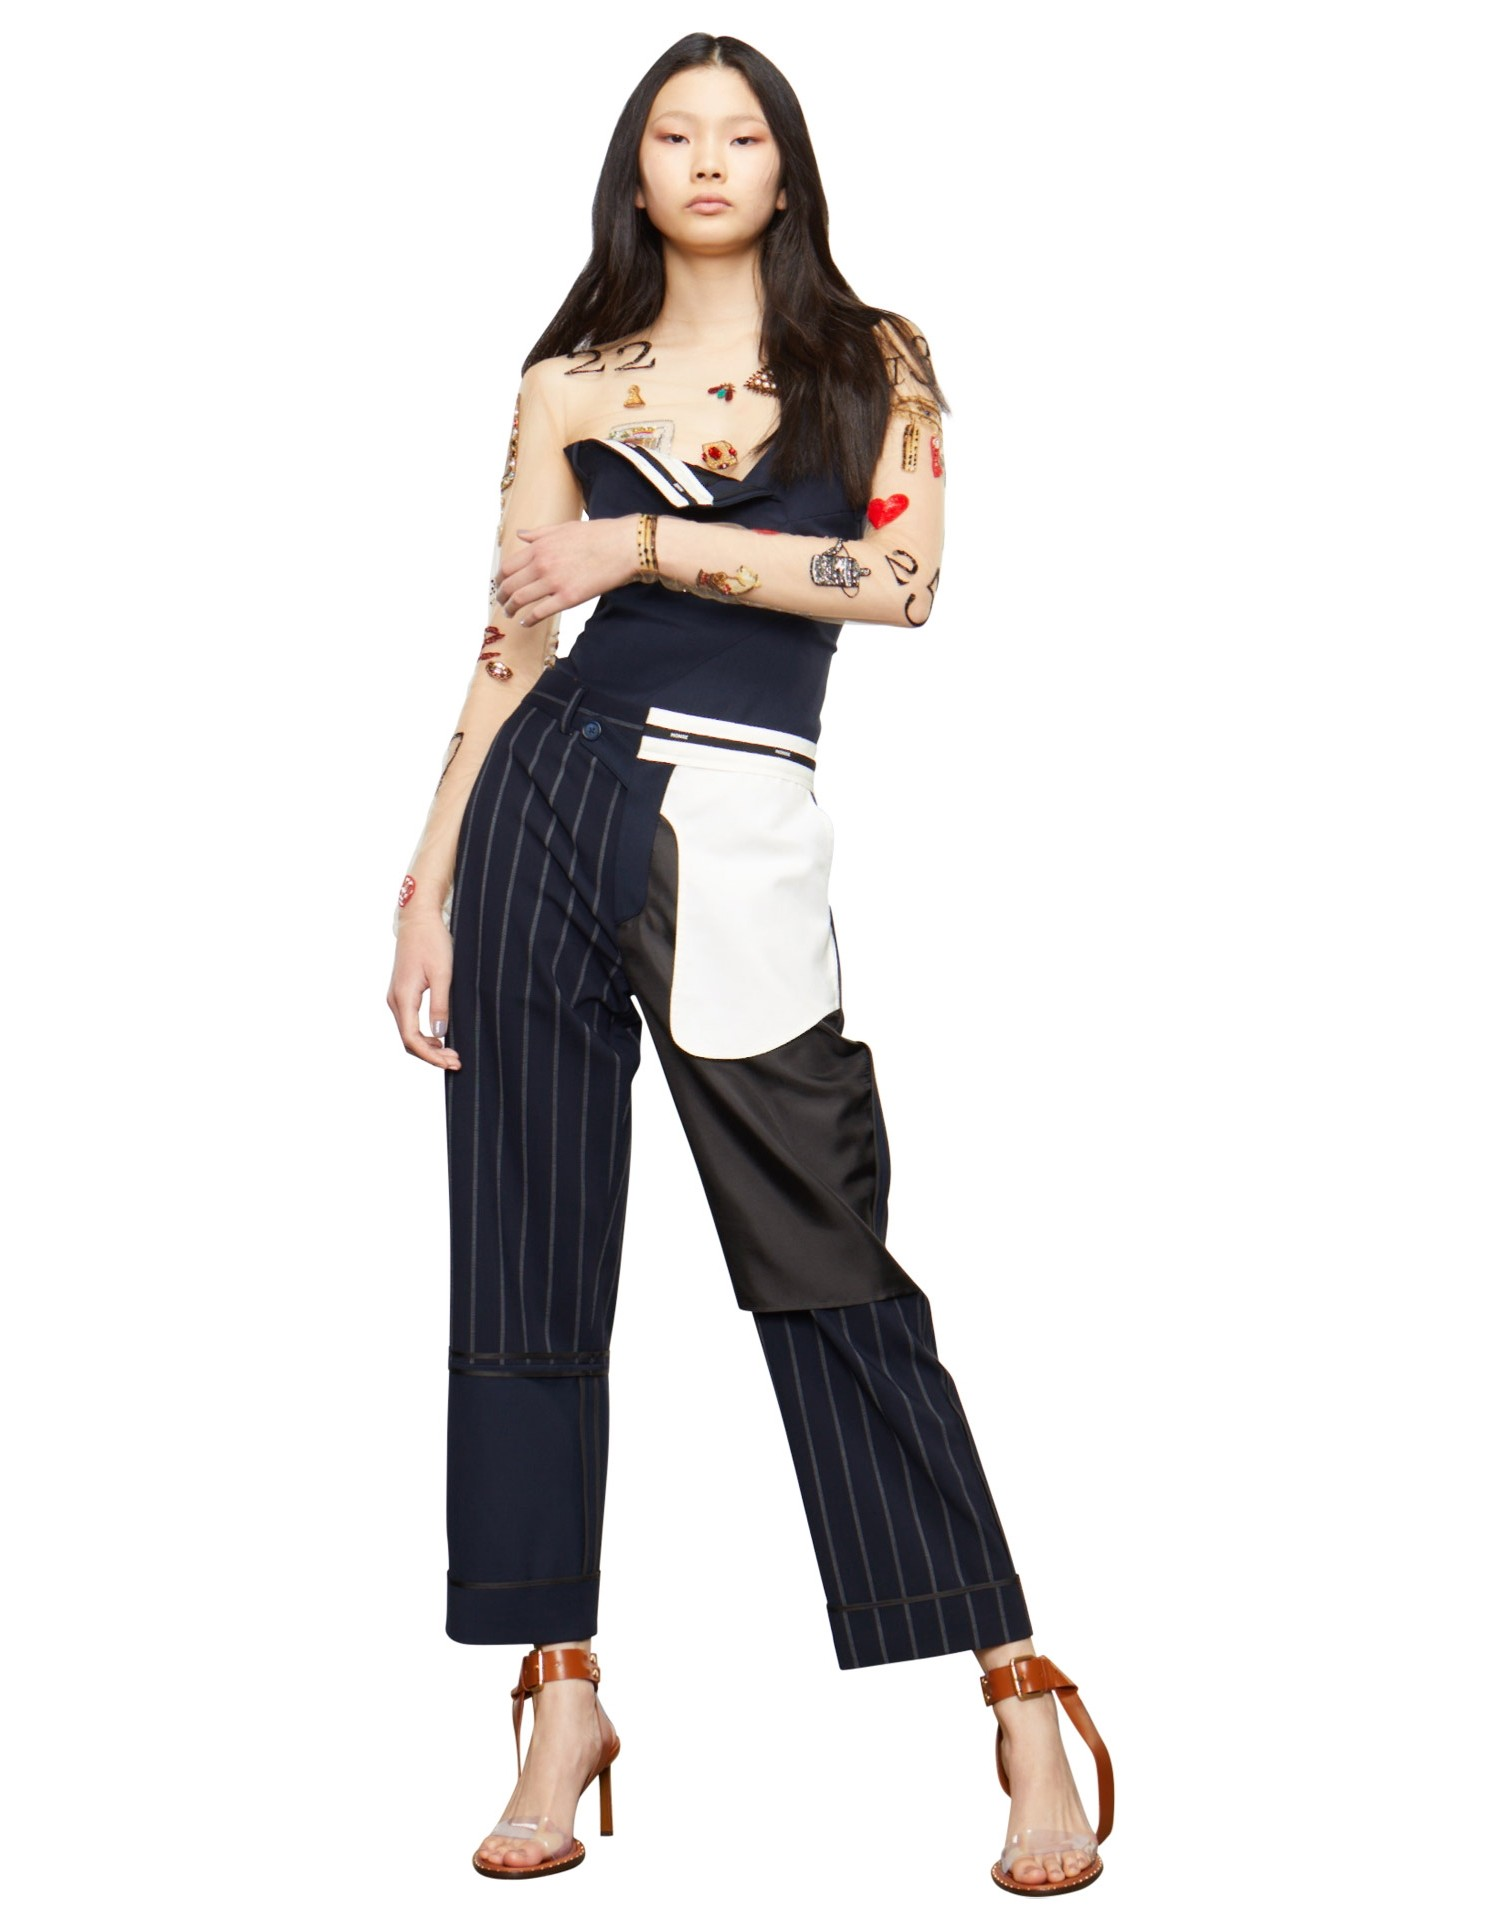 MONSE Pinstripe Inside Out Patchwork Pant on Model Front View